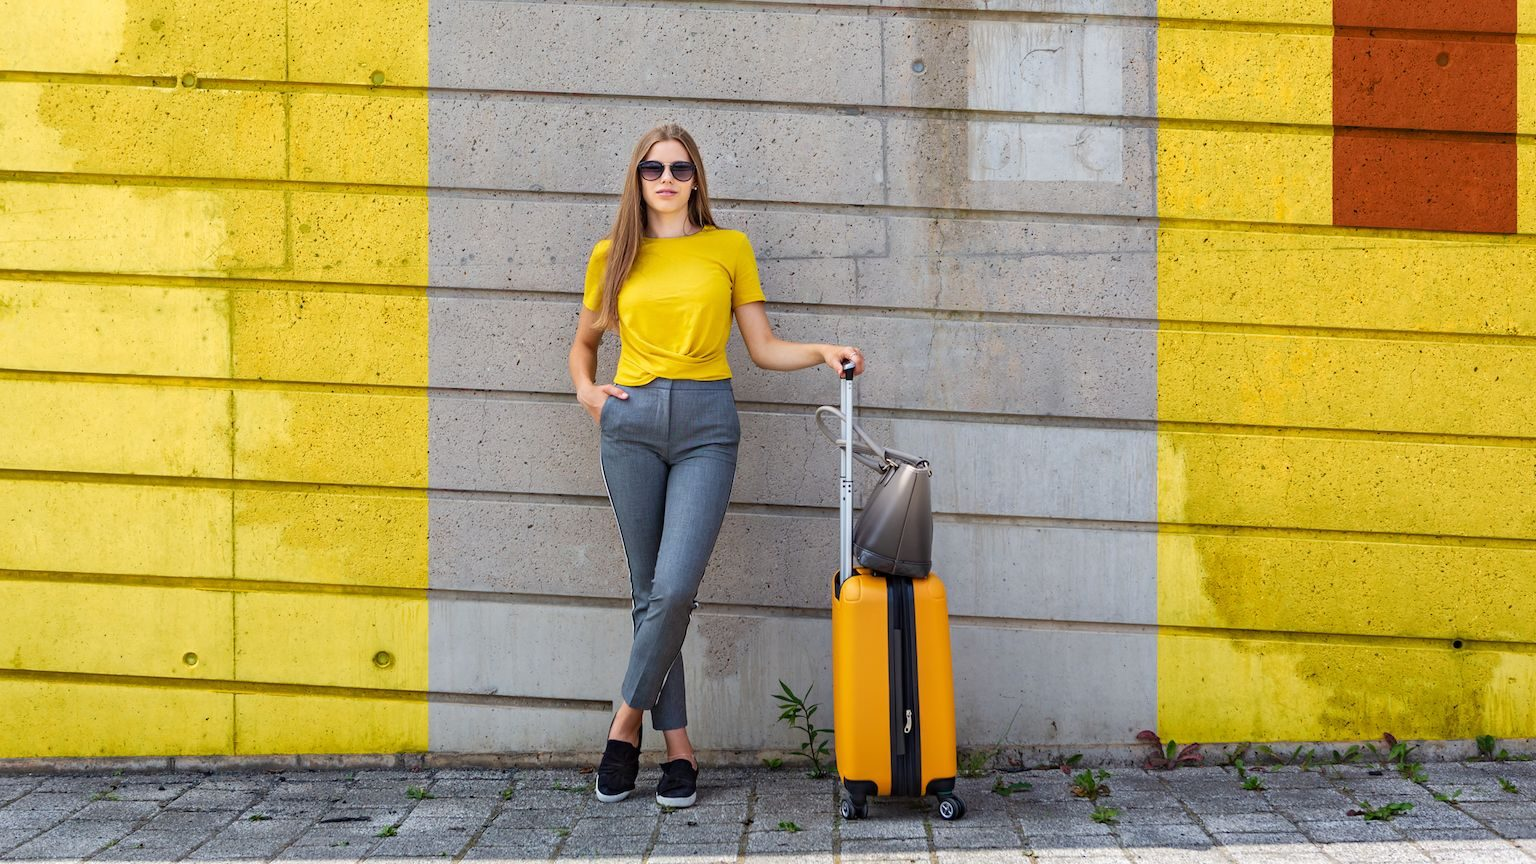 Woman wearing a yellow t-shirt standing with a yellow suitcase in front of a yellow painted wall